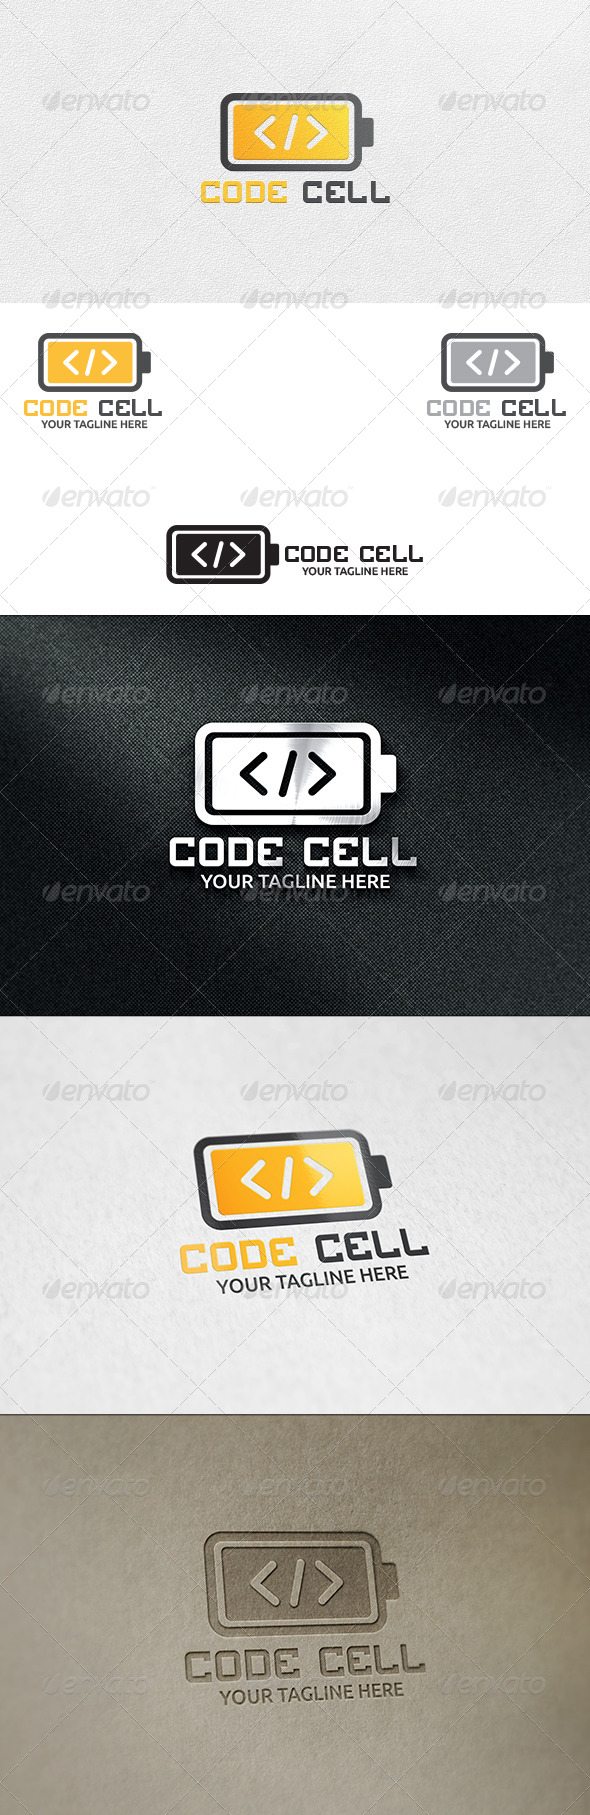 GraphicRiver Code Cell Logo Template 6462269